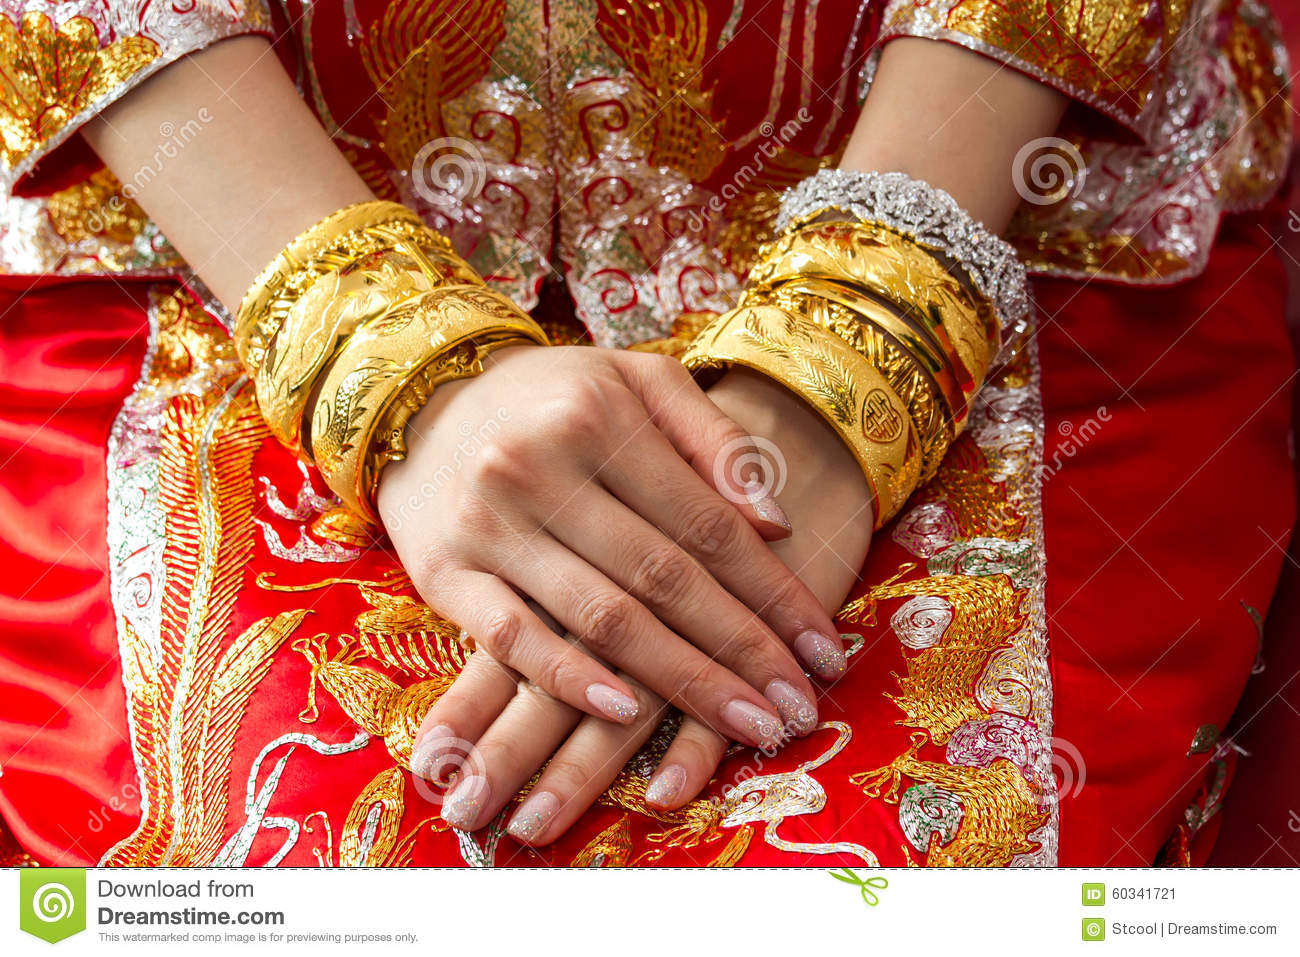 Traditional Wedding Gift From Mother To Daughter : ... woman wedding ceremony, mother will give gold bangles to daughter